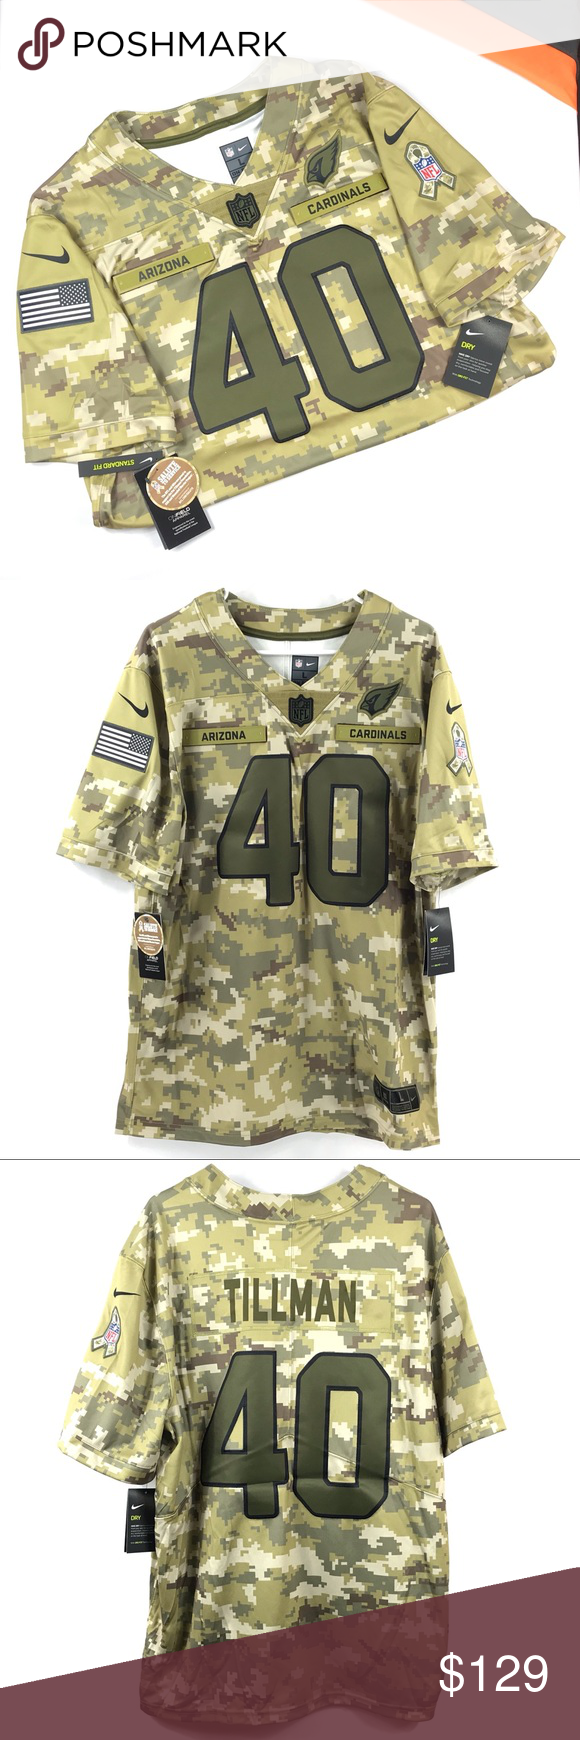 Nike Pat Tillman Salute To Service Jersey 100% Recycled Polyester. Twill numbers and team logo. Salute to Service ribbon and American flag sleeve patches. Satin twill woven jock tag. Tonal NFL shield at collar. Tagless Collar. Men's Nike Limited Jerseys fit true to size. We recommend ordering one size larger than you normally wear for a looser fit or up two sizes if you plan on layering underneath the jersey.  Purchased through major retailer and are 100% authentic.  Ship from smoke free home wi #salutetoservice